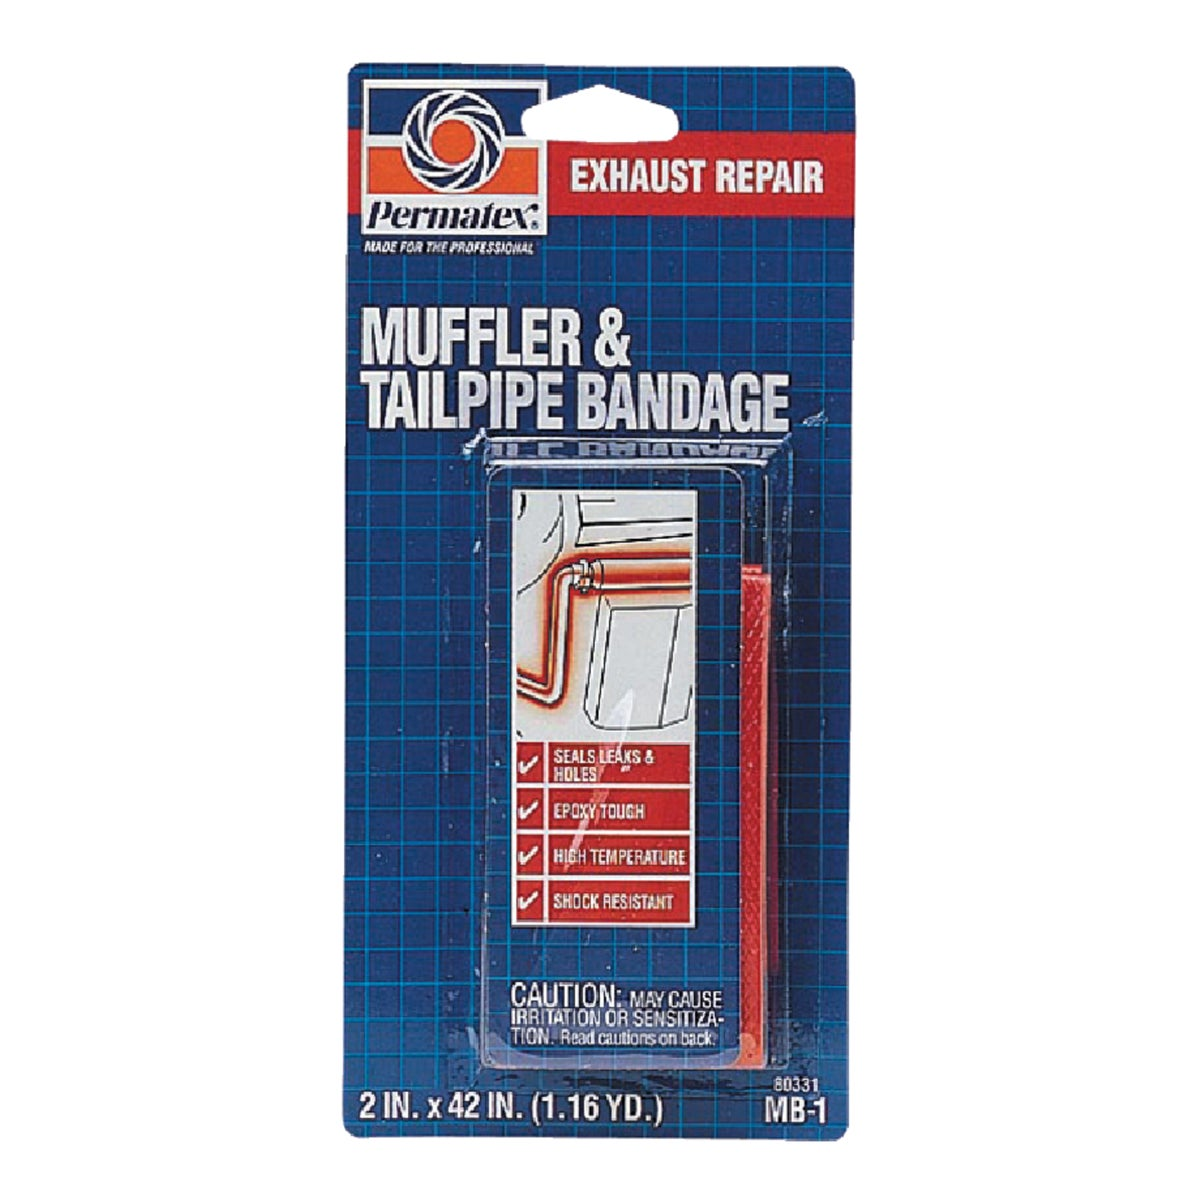 MUFFLER BANDAGE - 80331 by Itw Global Brands